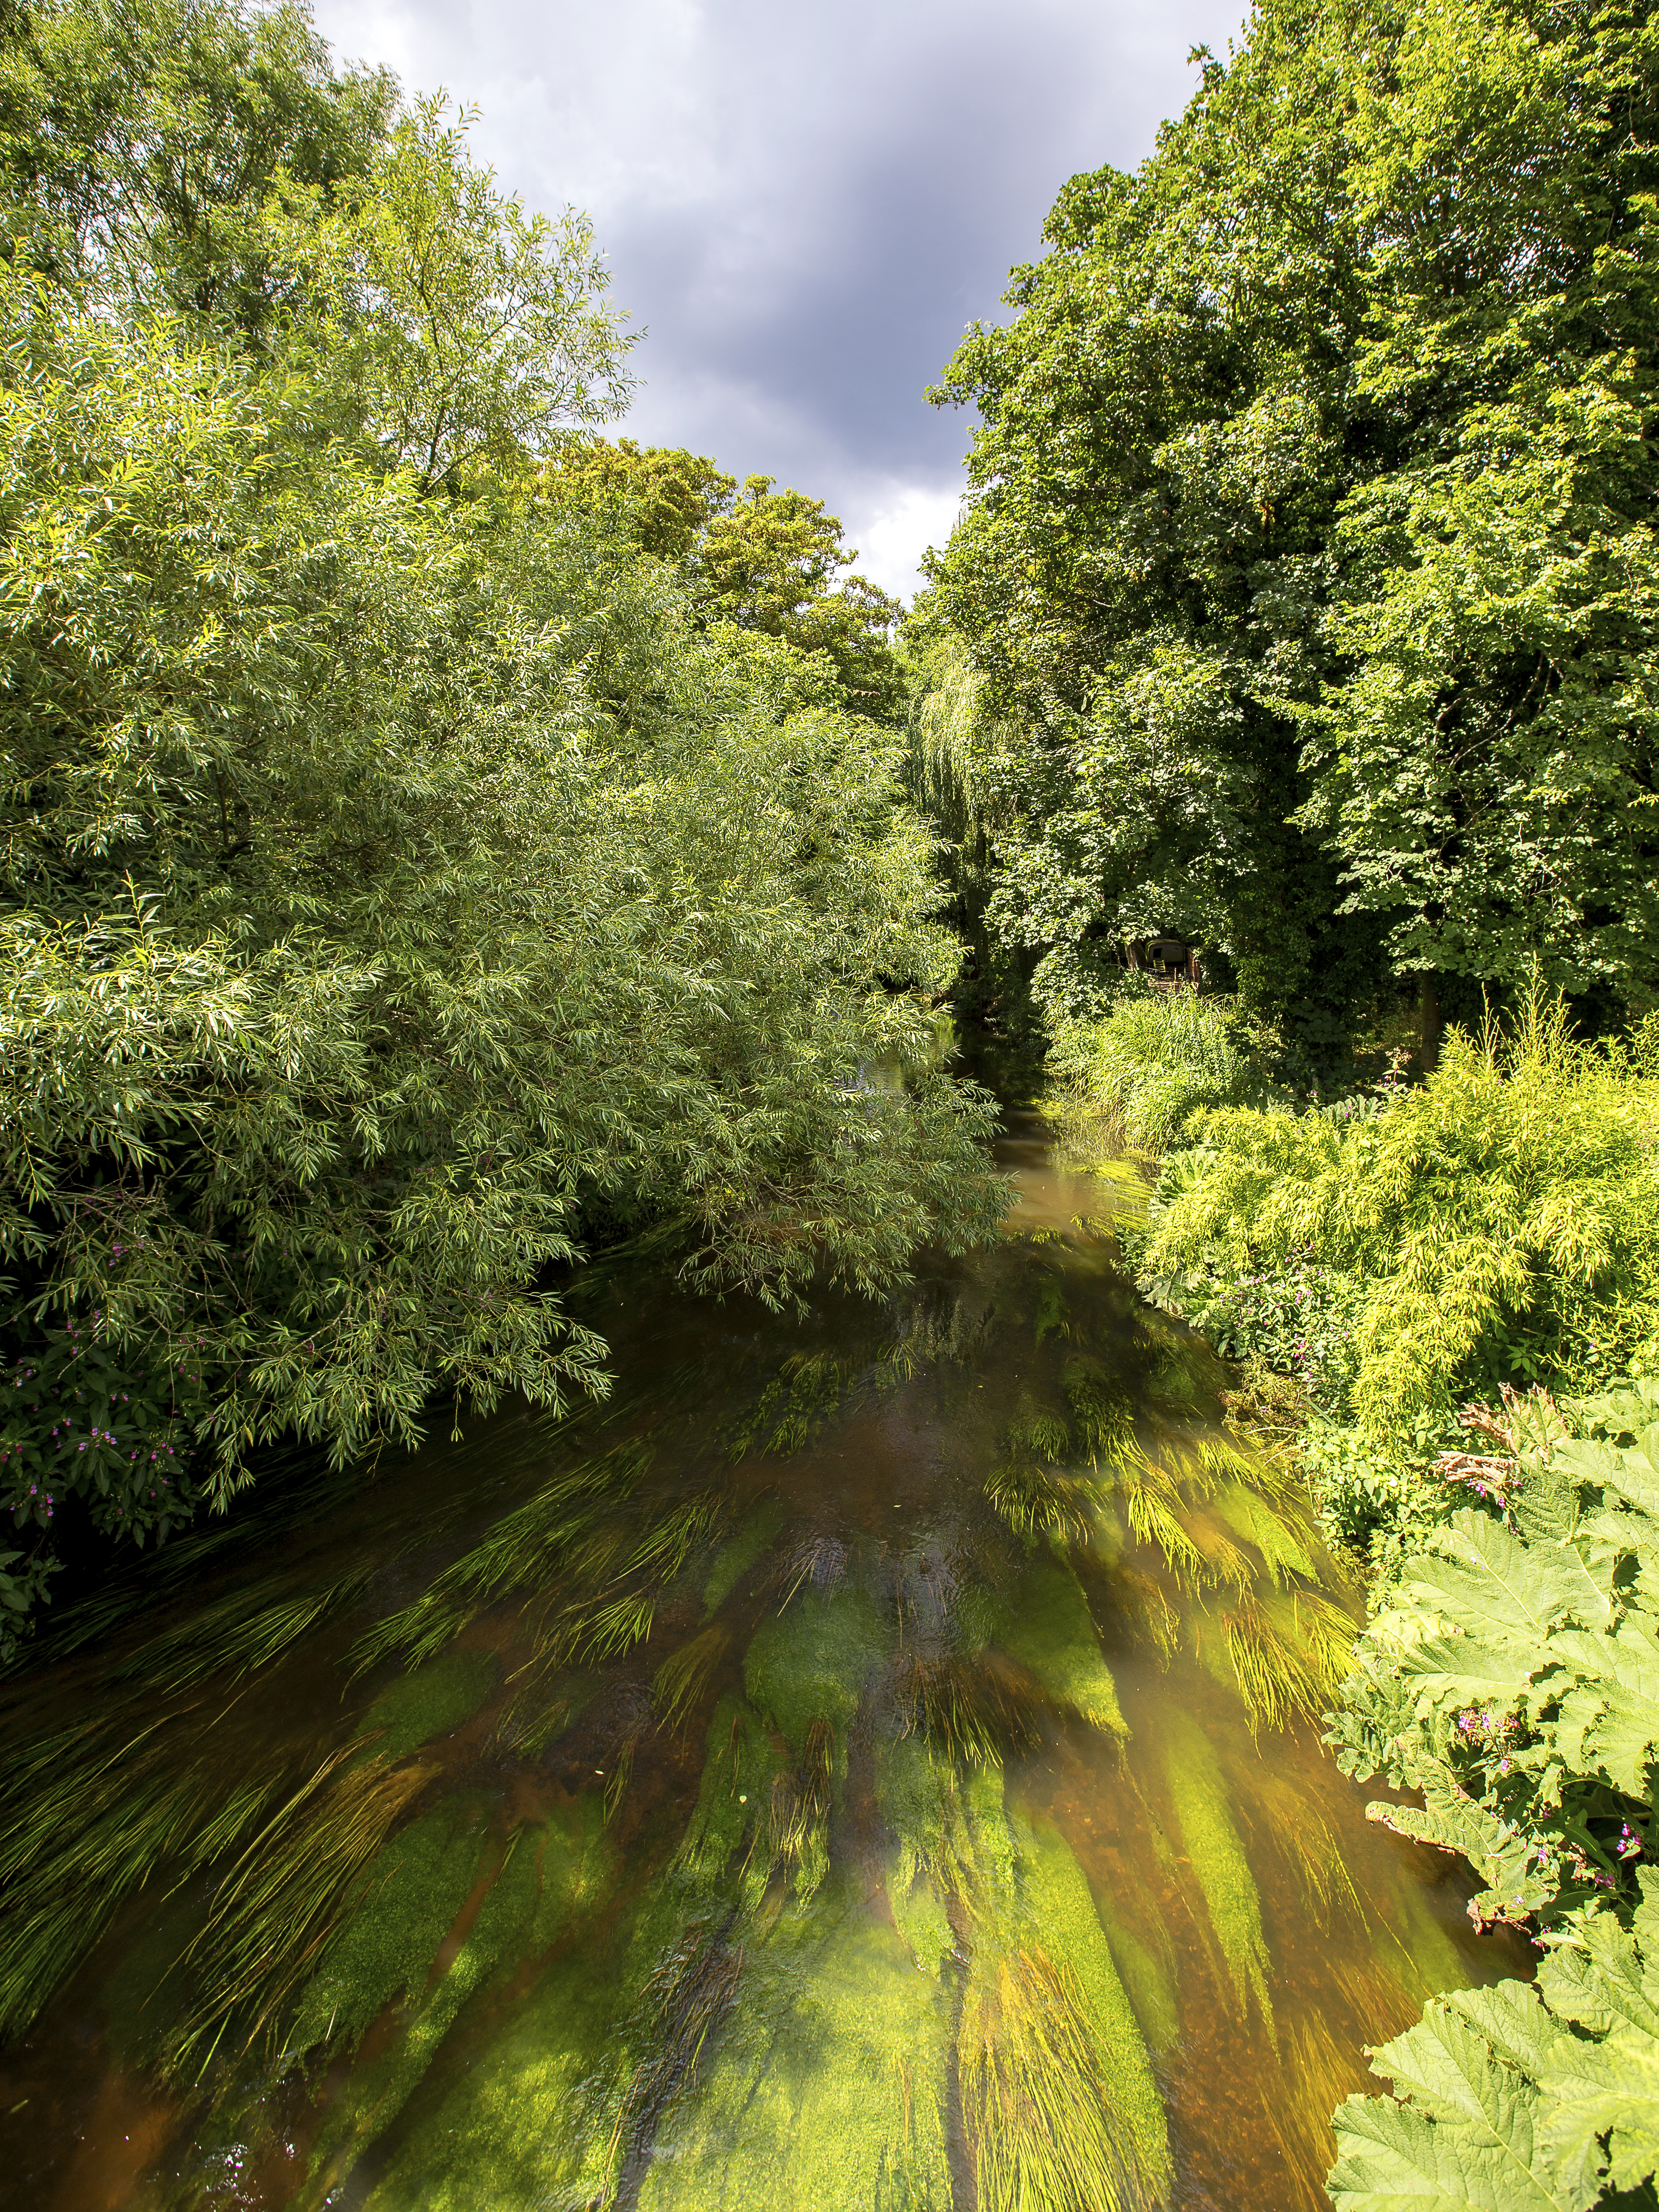 The River Wey, in Tilford, Surrey